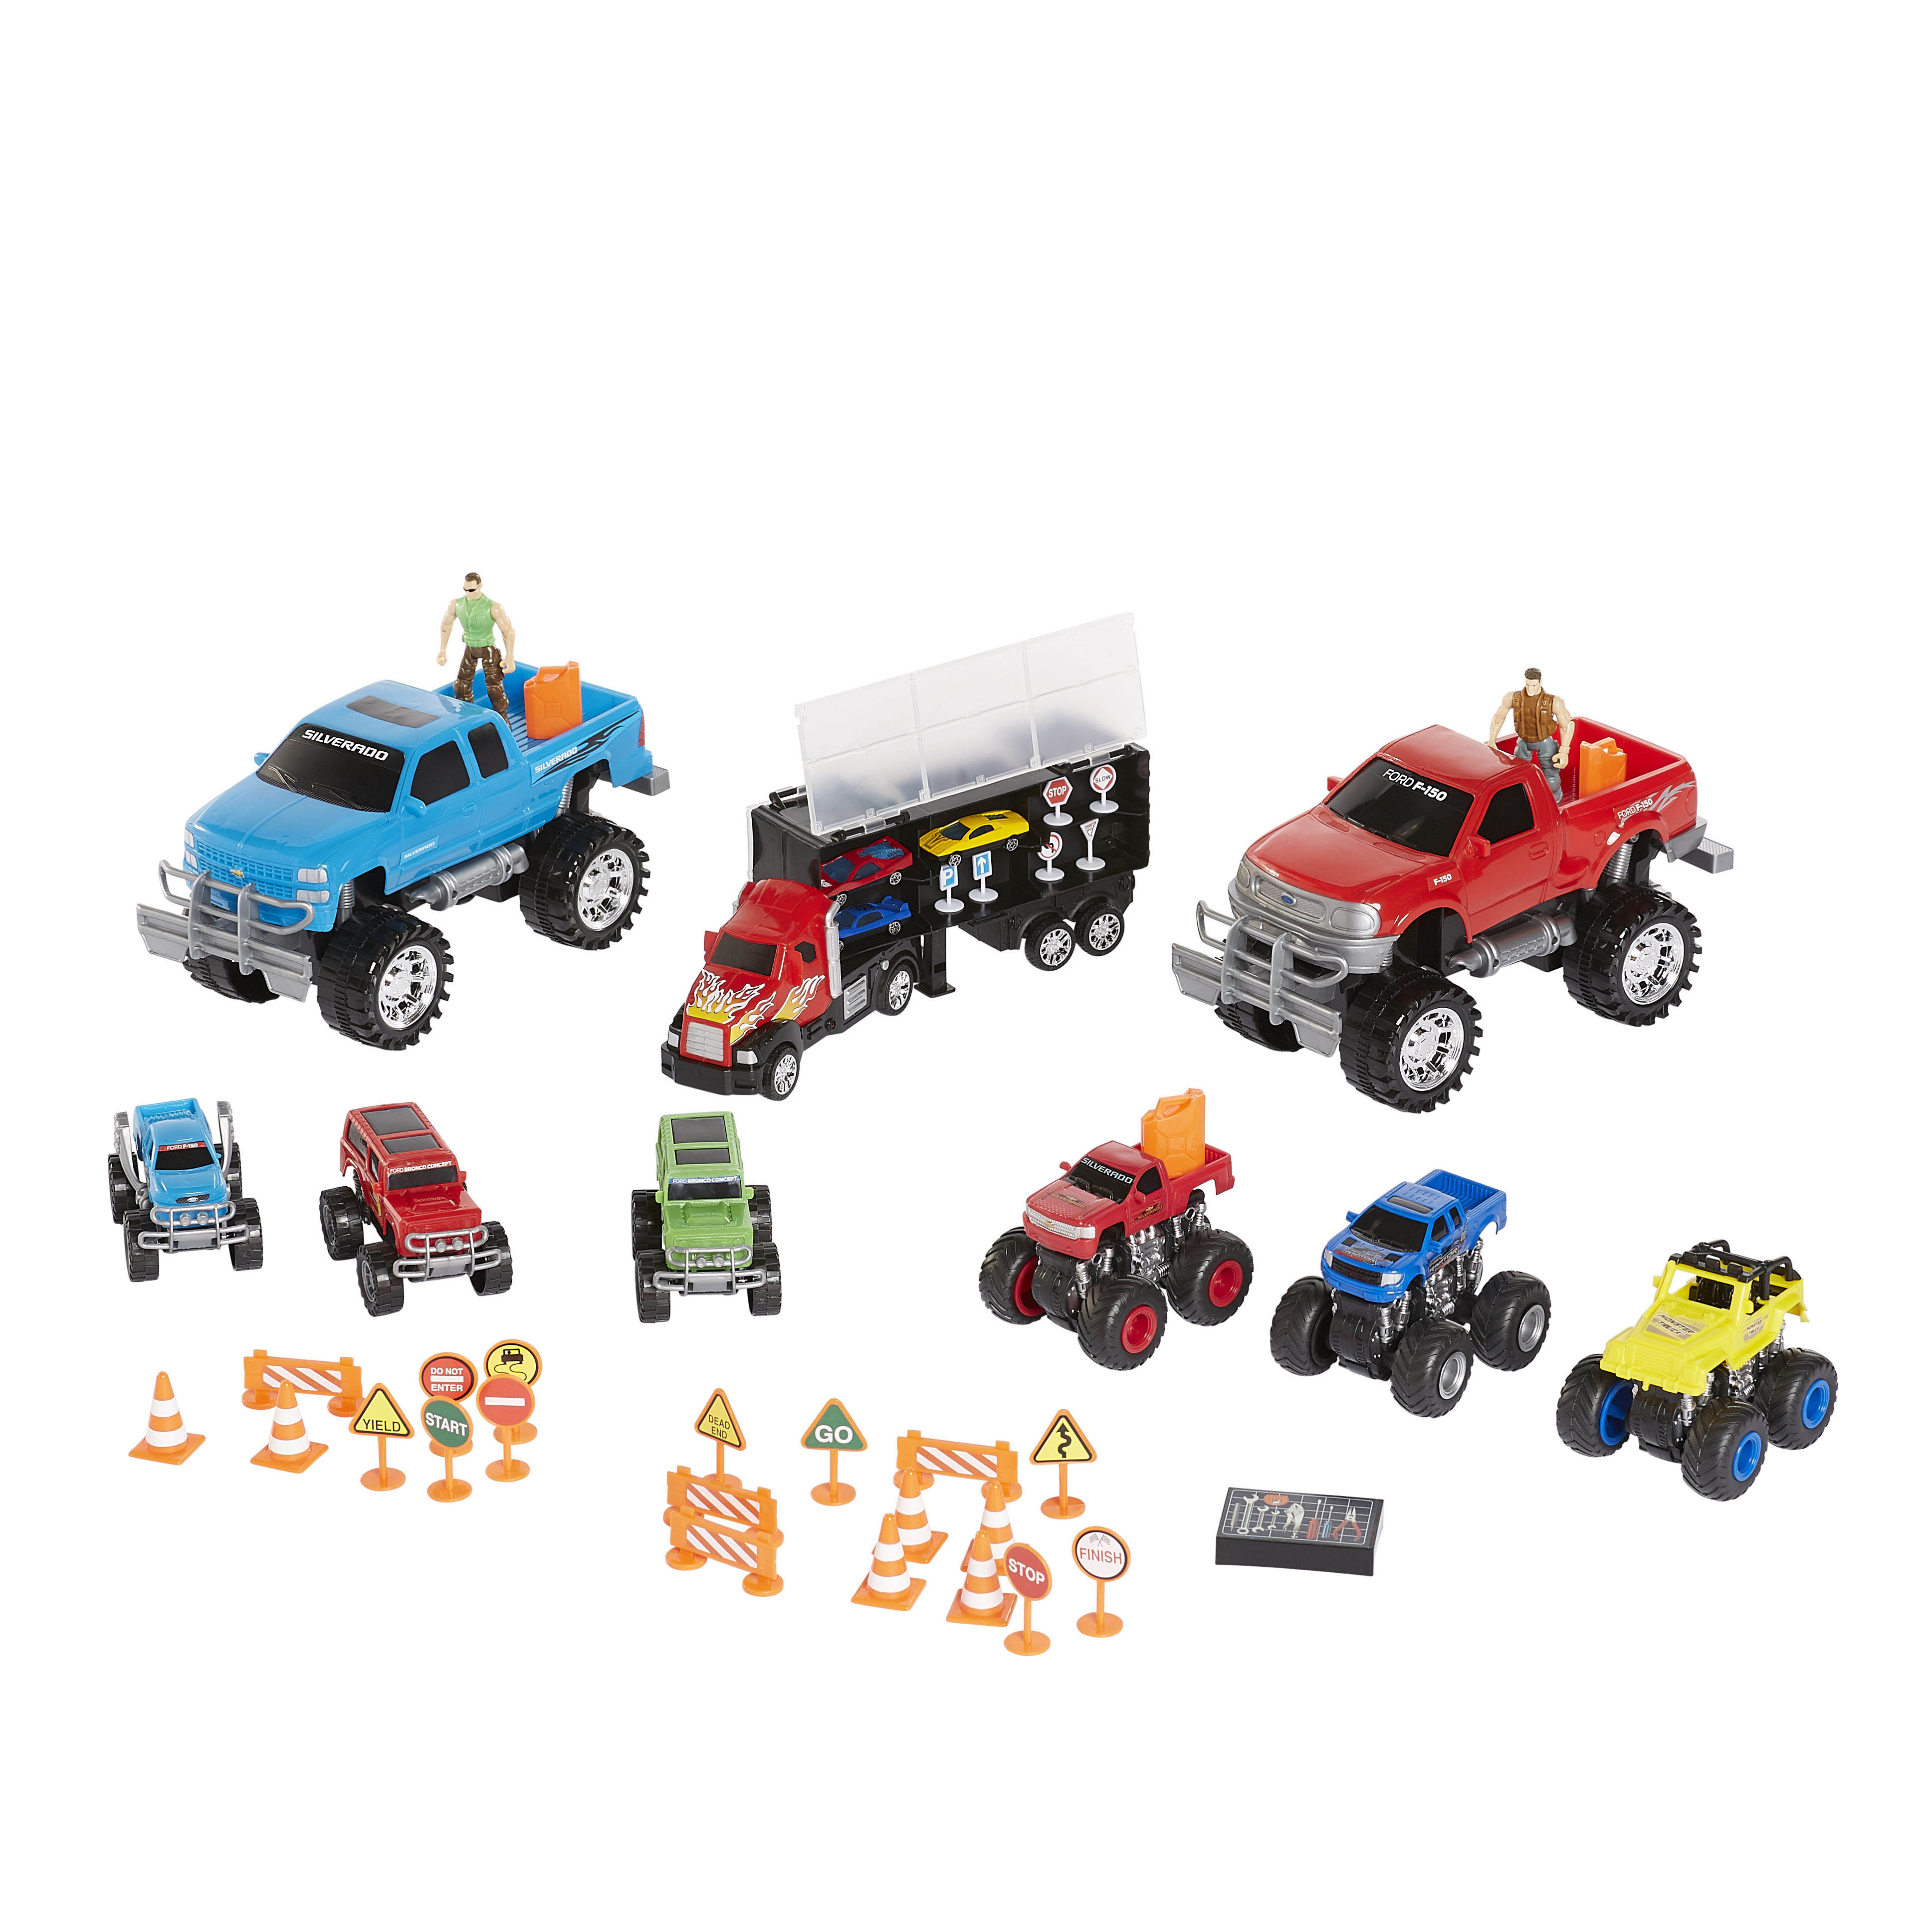 Kid Connection Jumbo Monster Truck Play Set